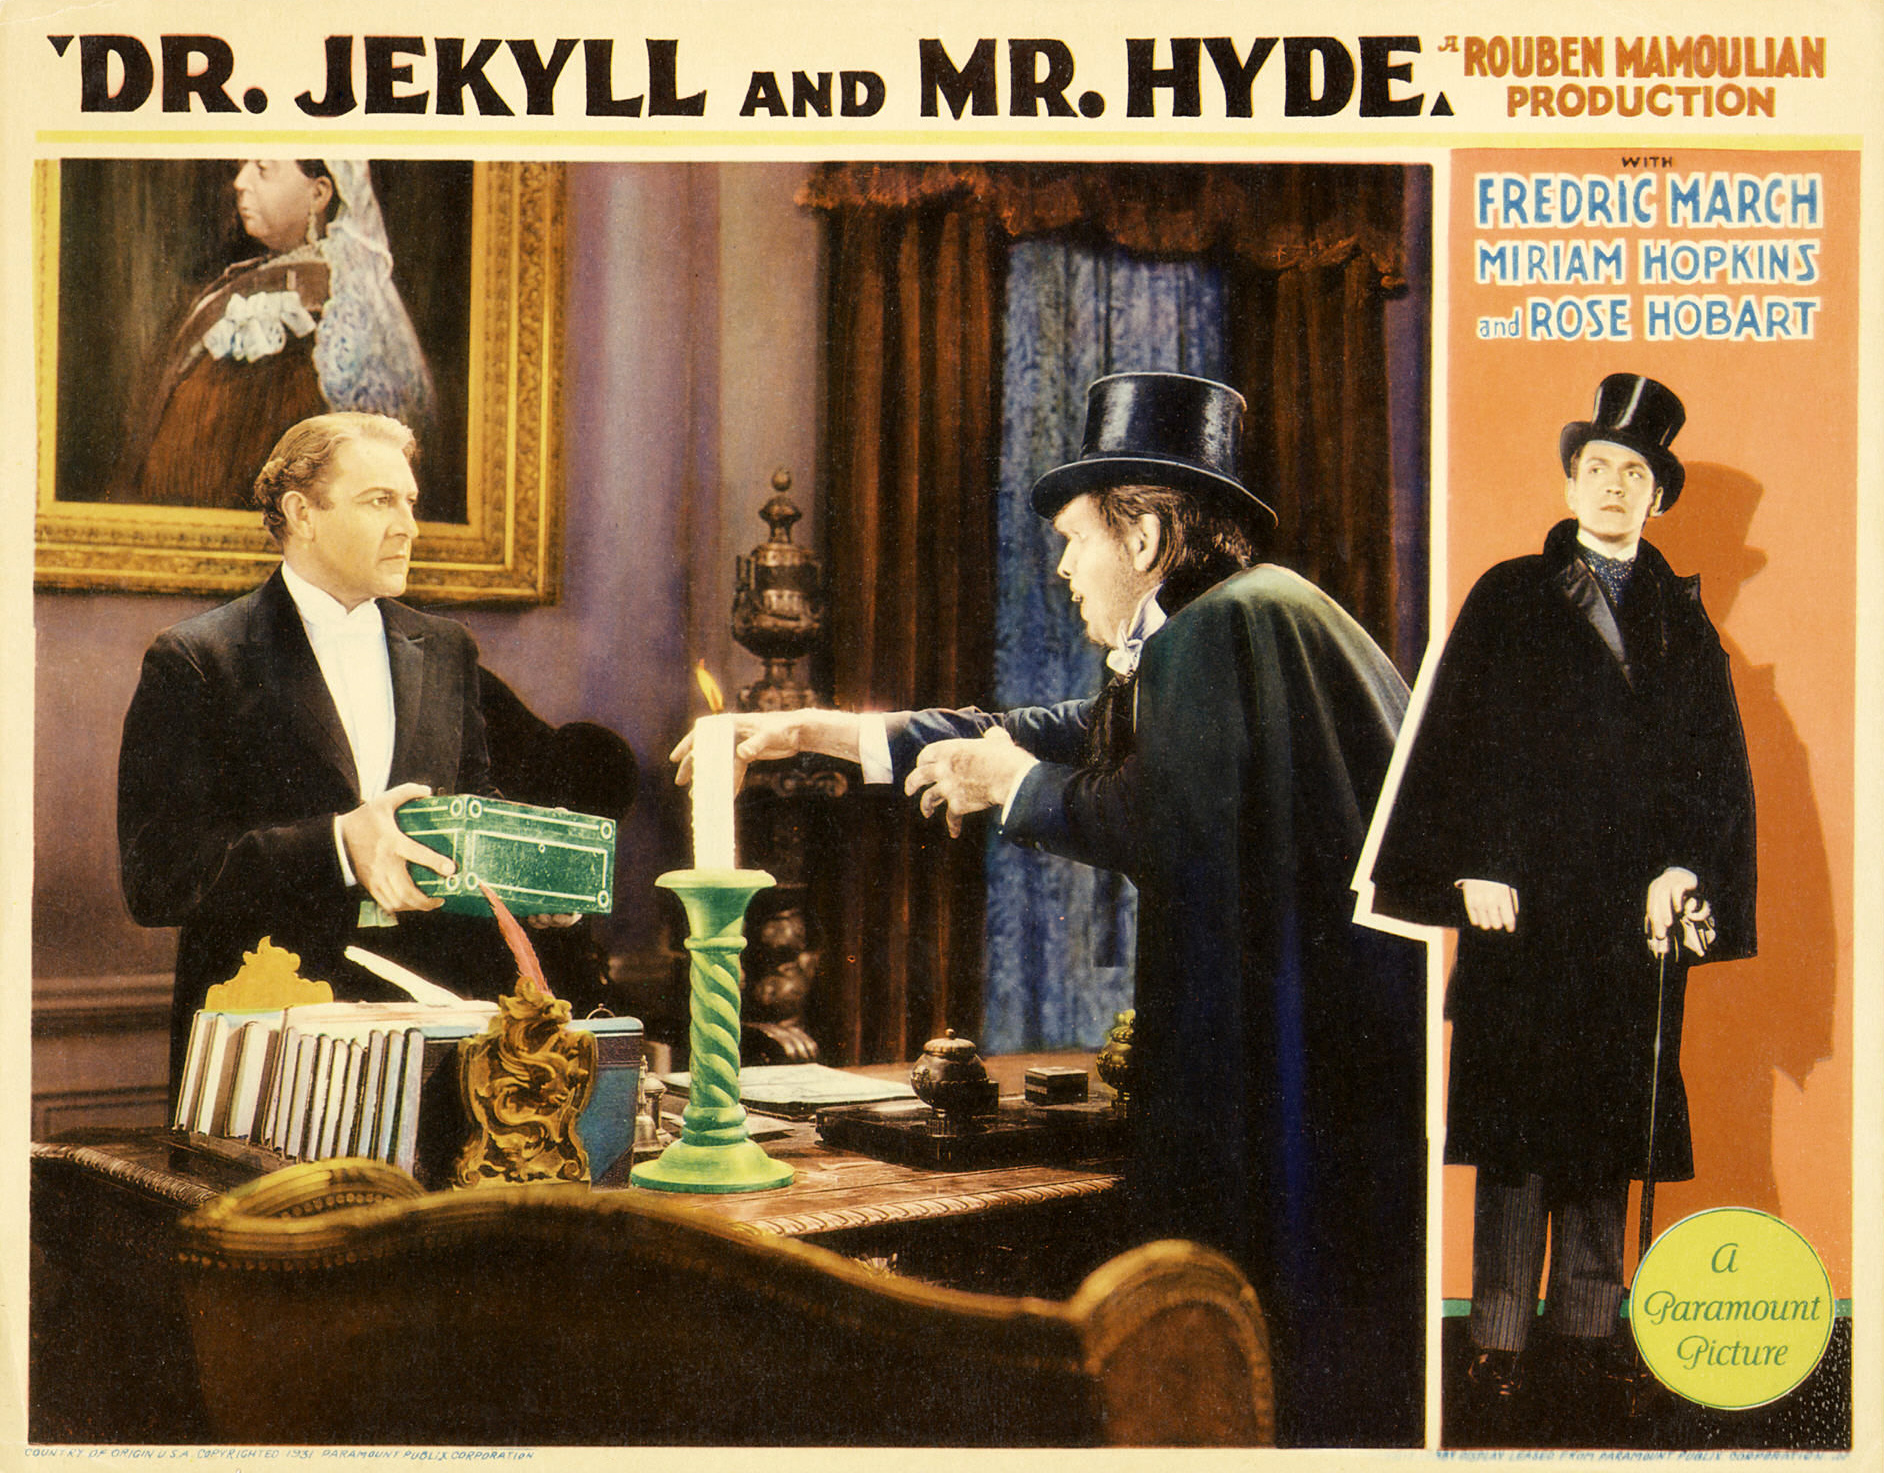 dr jekyll and mr hyde good Good and evil in the strange case of dr jekyll and mr hyde essay sample explore the ways in which rl stevenson uses setting to portray good and evil in the strange case of dr jekyll and mr hyde robert louis stevenson, the writer of this novel, was born on the 13th of november 1850 and was immediately indoctrinated with religion.